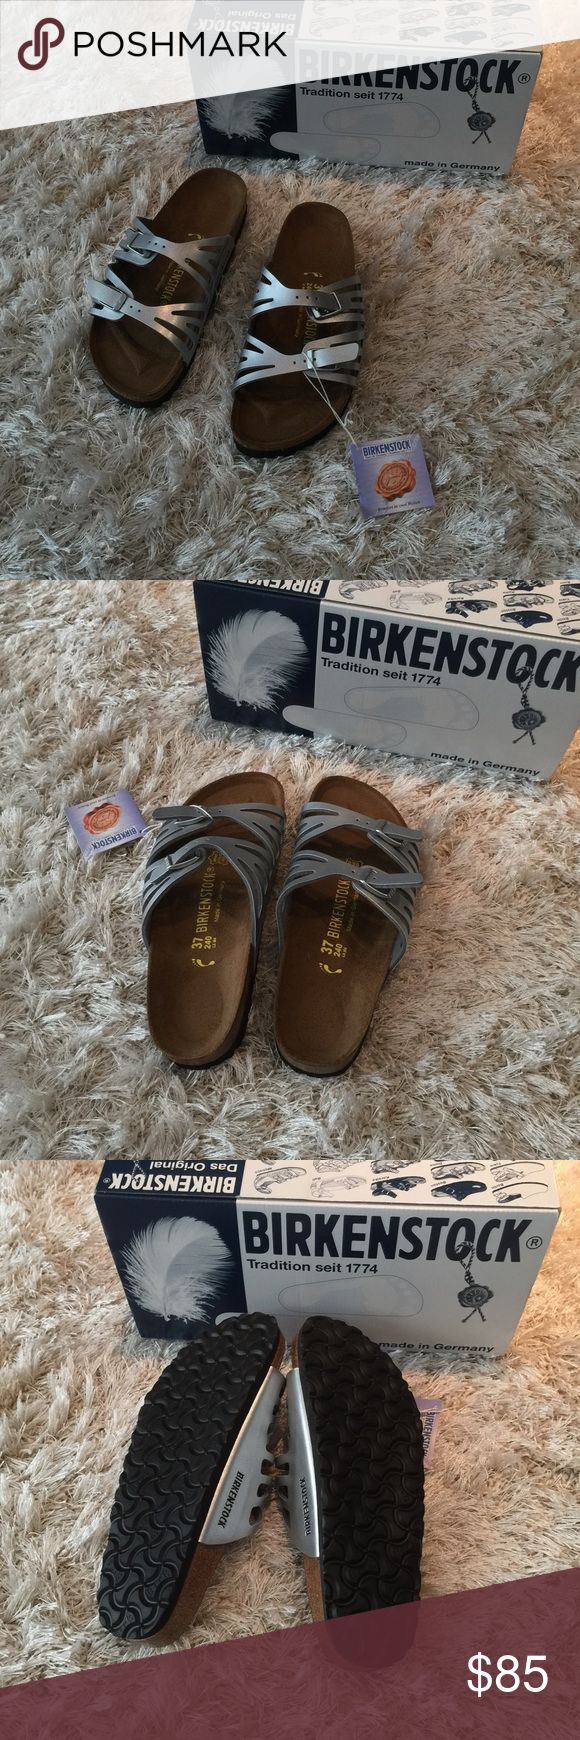 NWT Birkenstock slipper size 6 /37 New in box. Size 6. EU size 37 Birkenstock Shoes Slippers